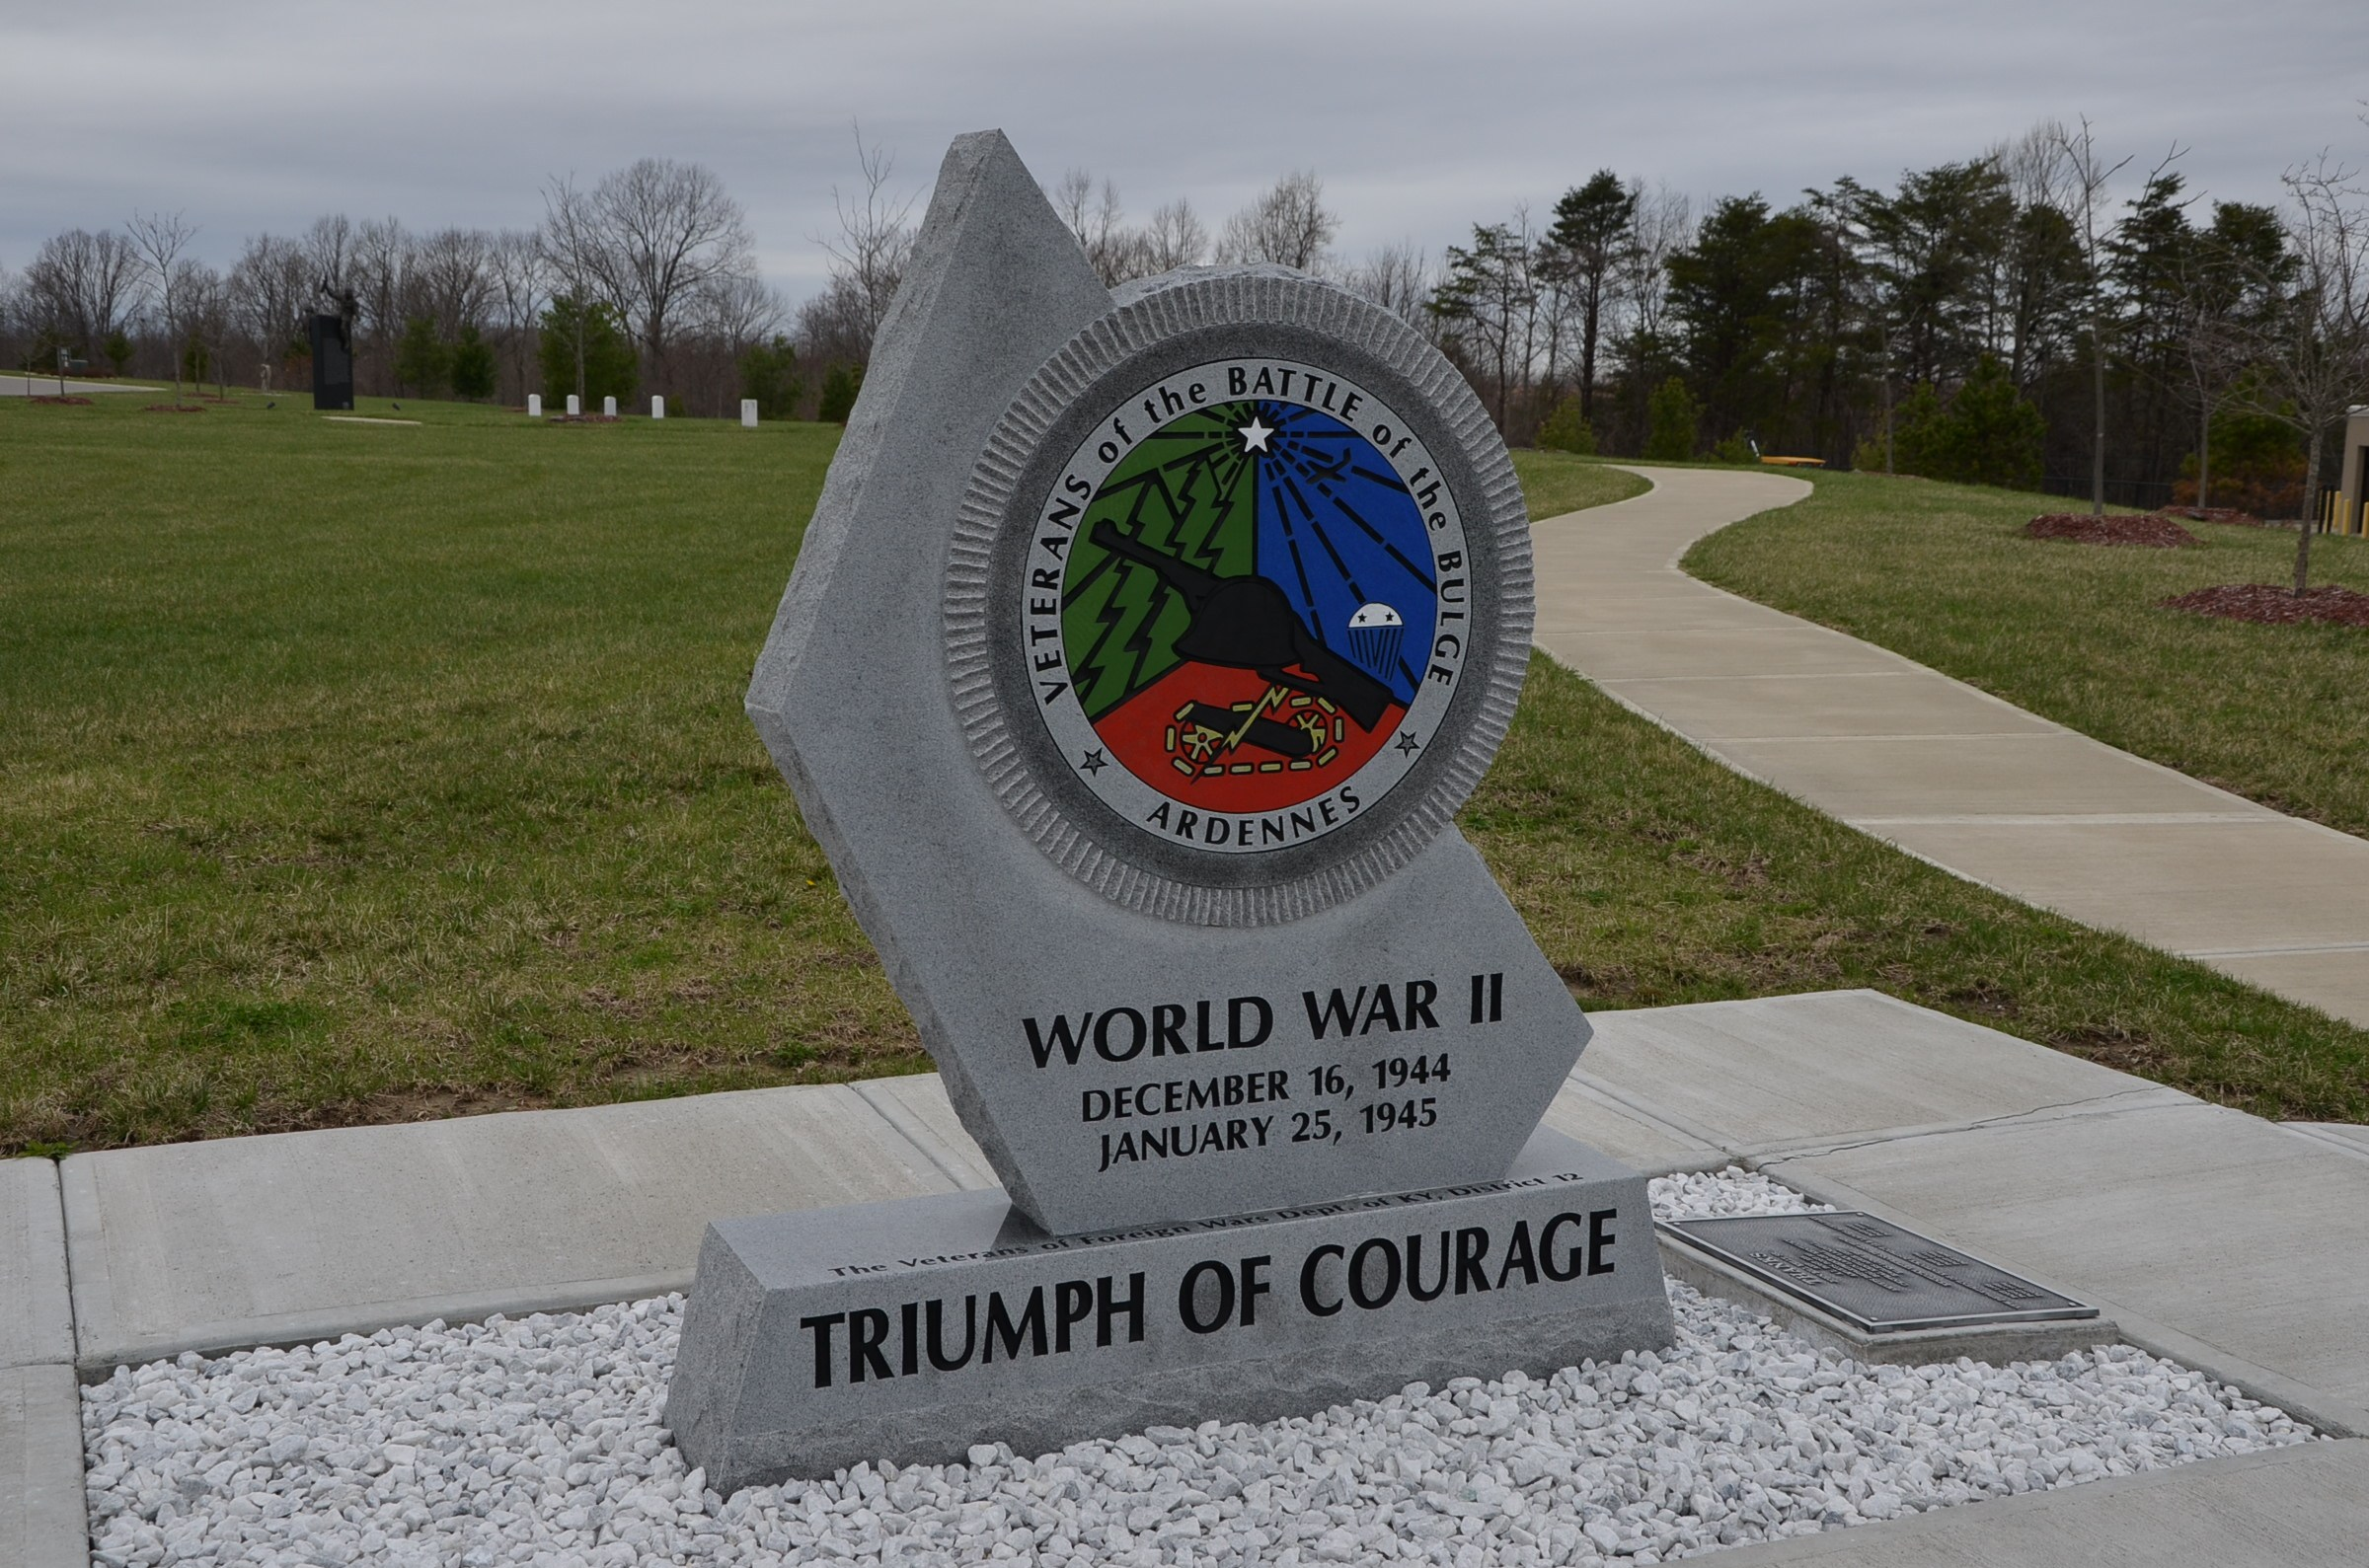 The Battle of the Bulge monument